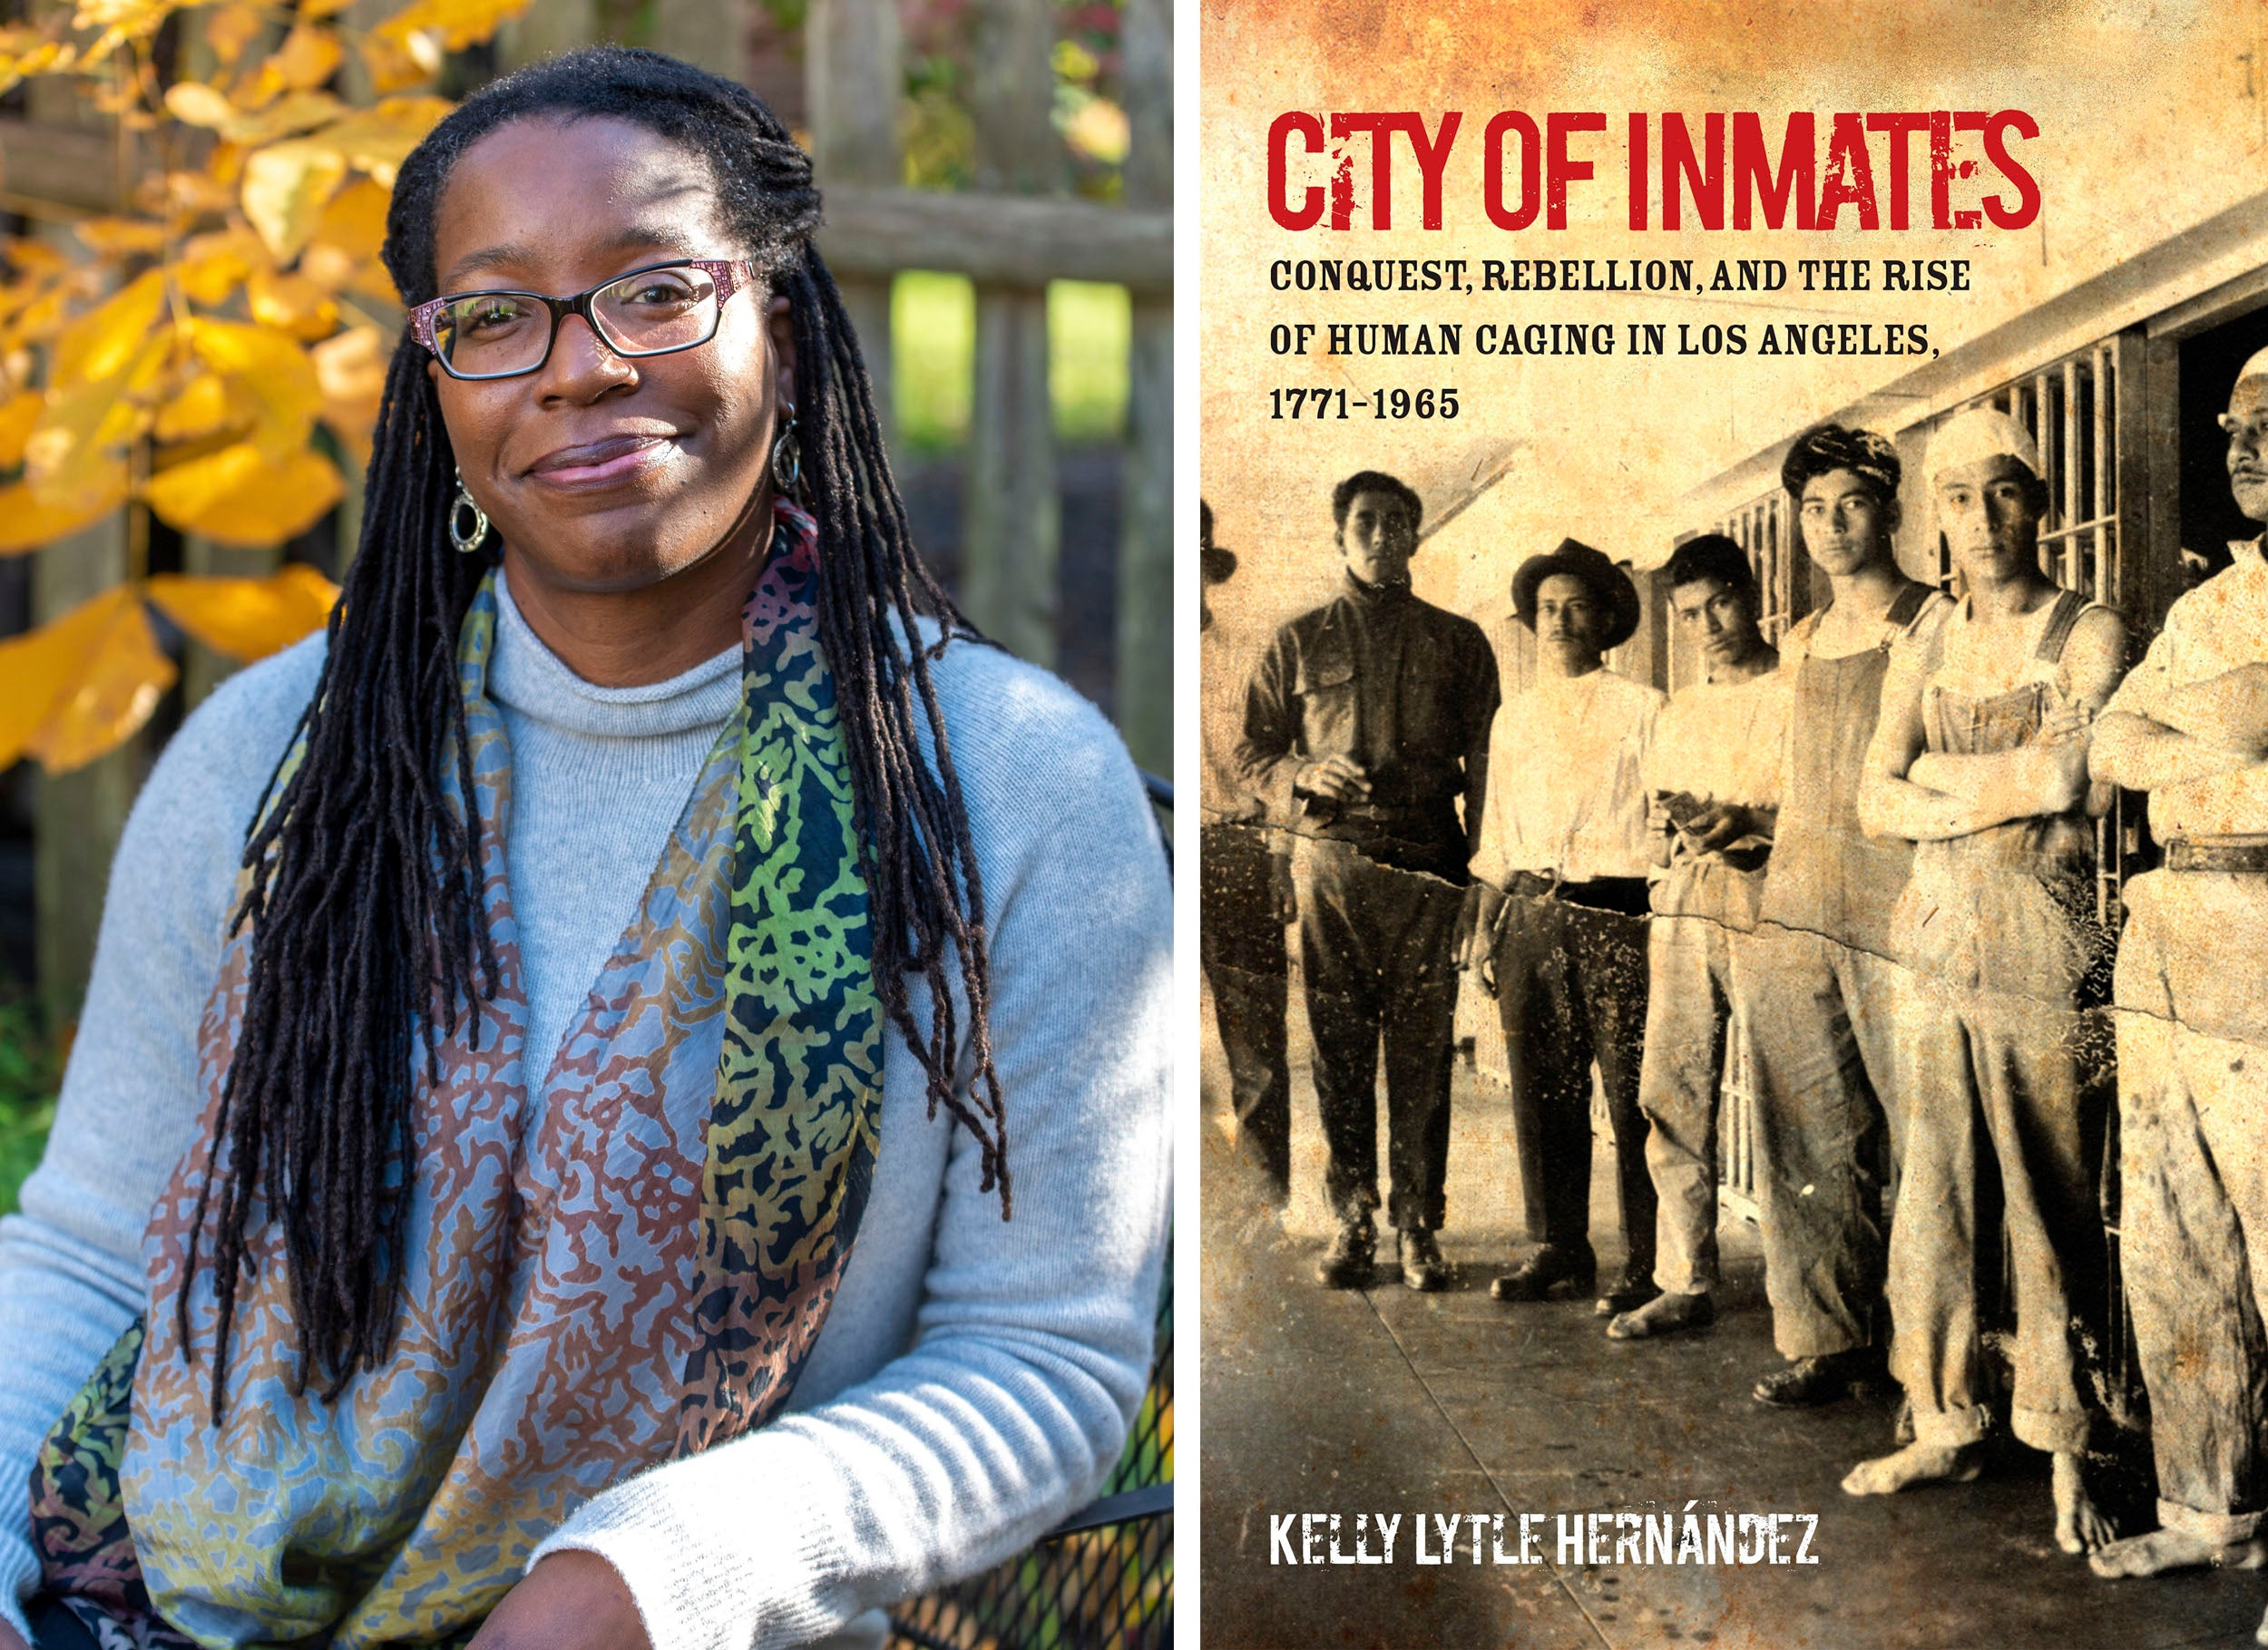 Tiya Miles and City of Inmates book cover.